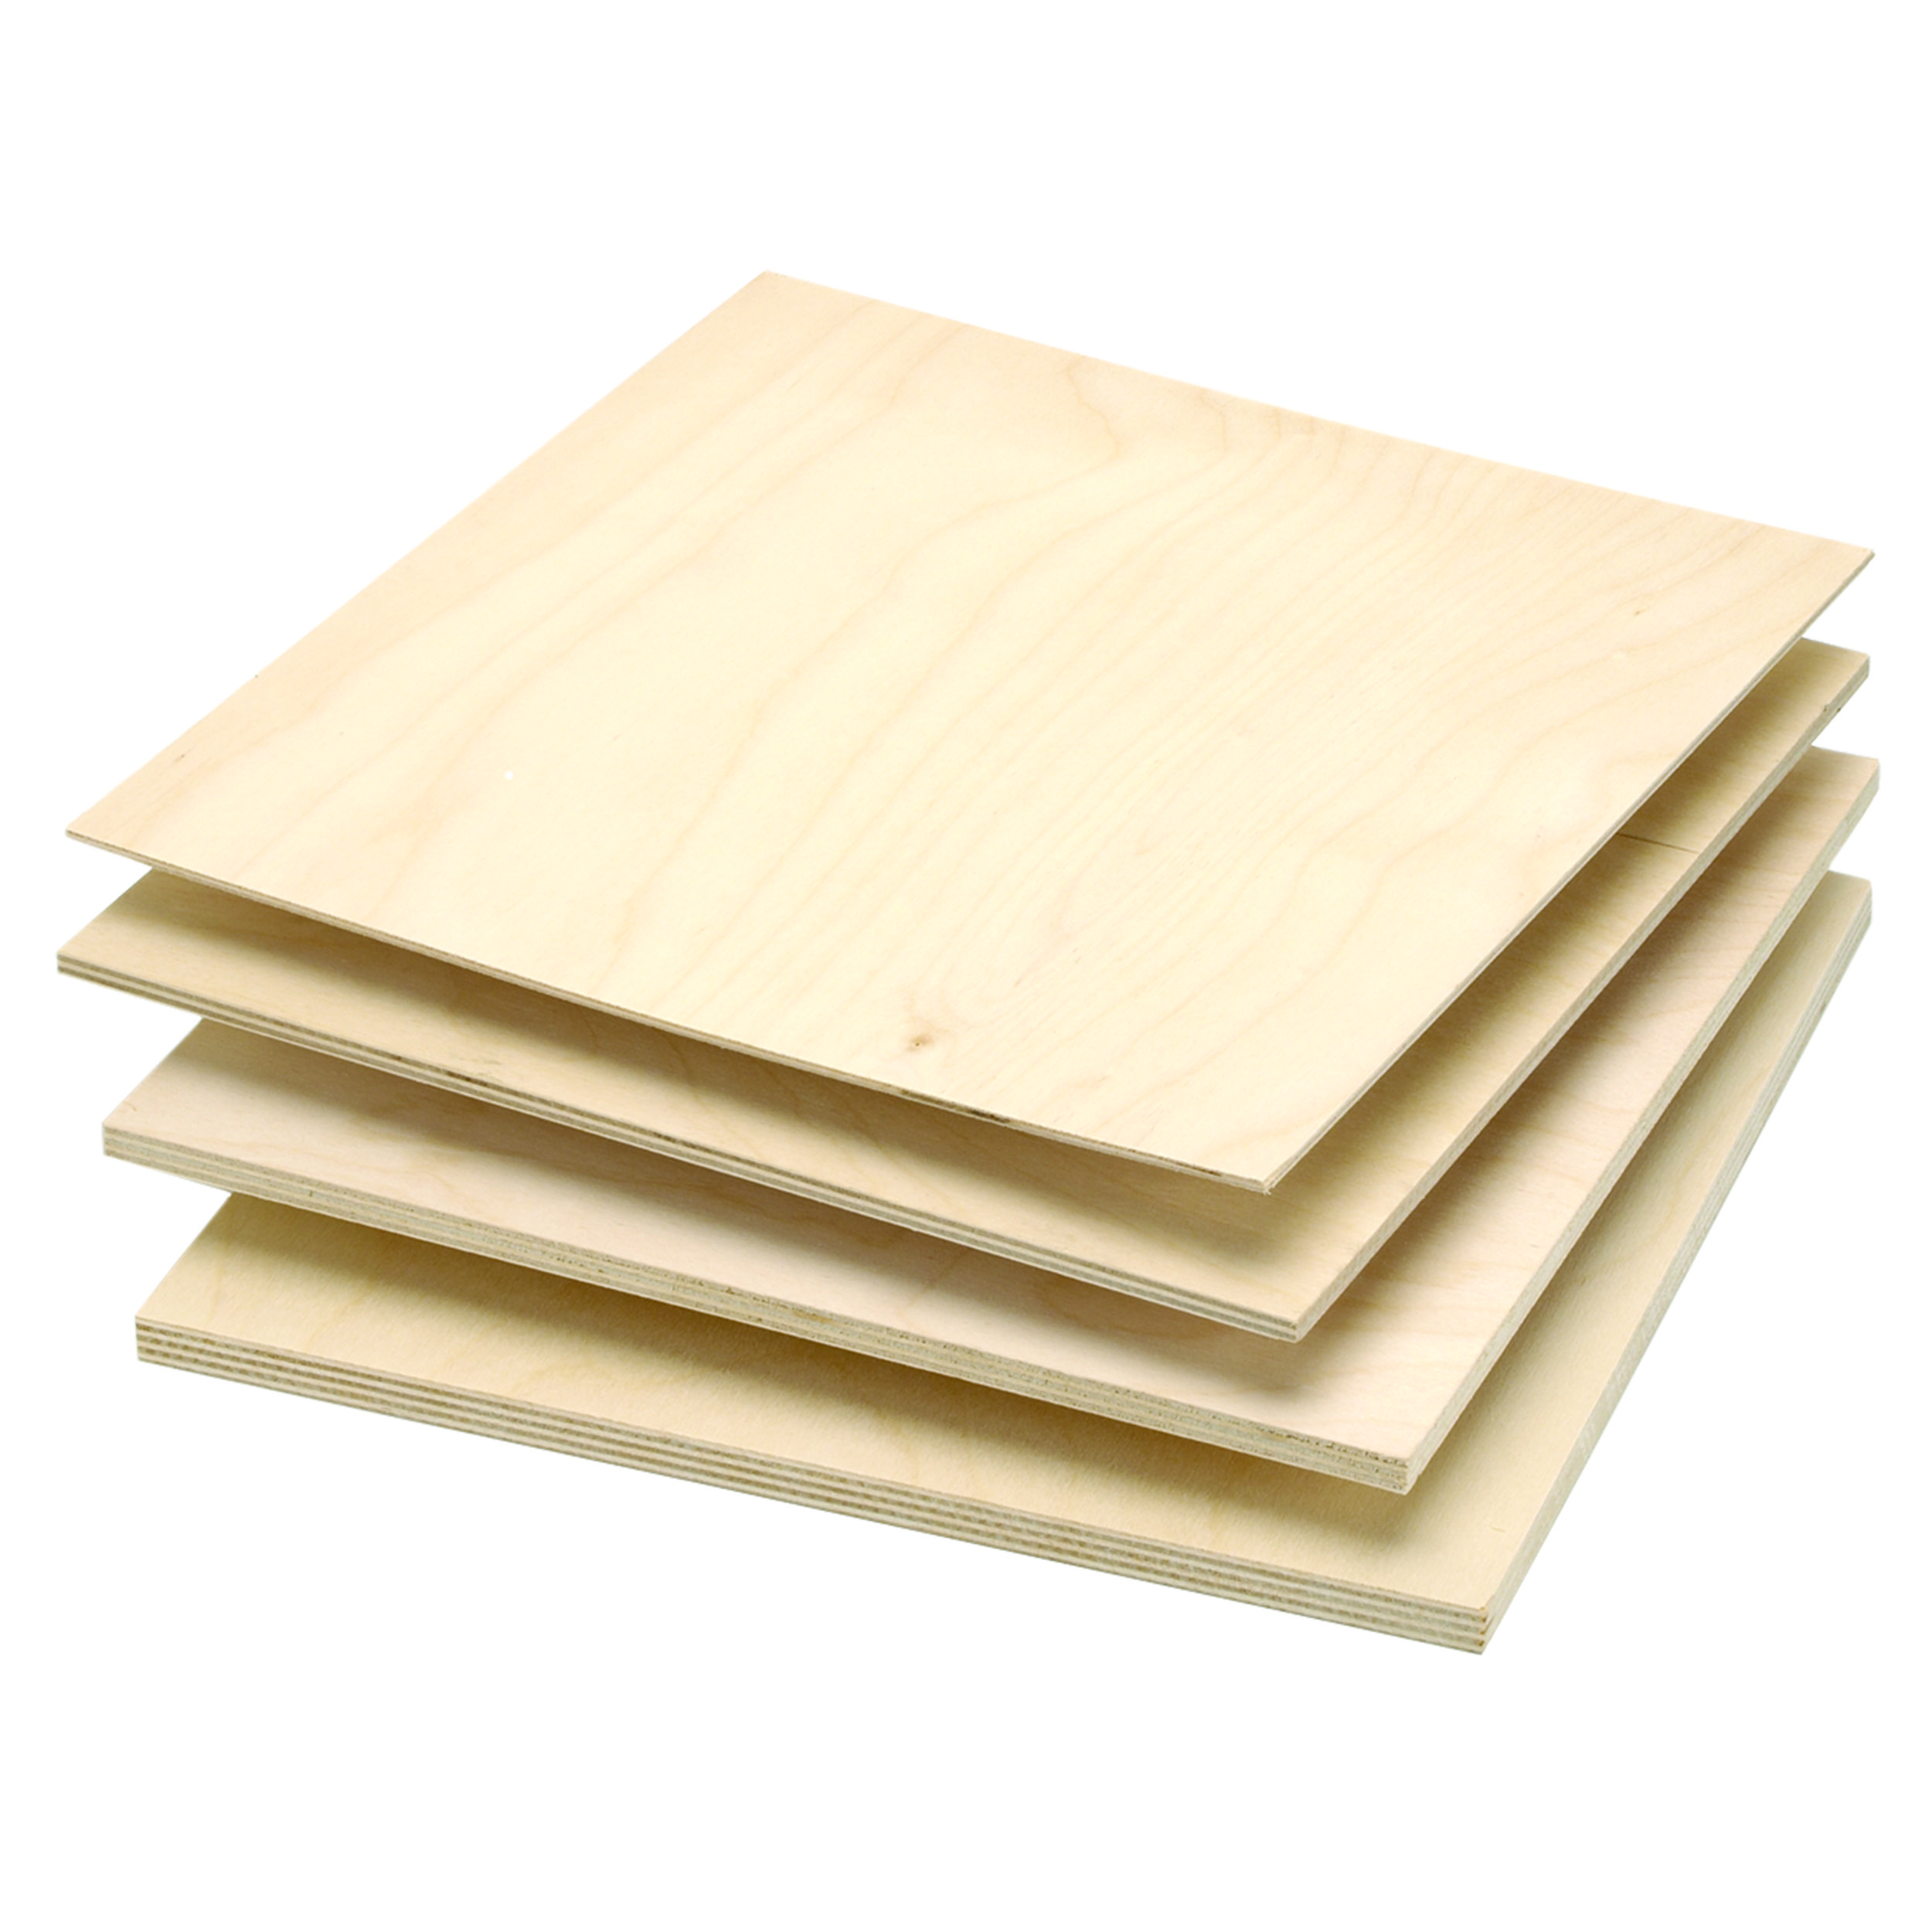 Finnish Birch Plywood 1 2 X 12 X 30 Baltic Birch Plywood Plywood Baltic Birch